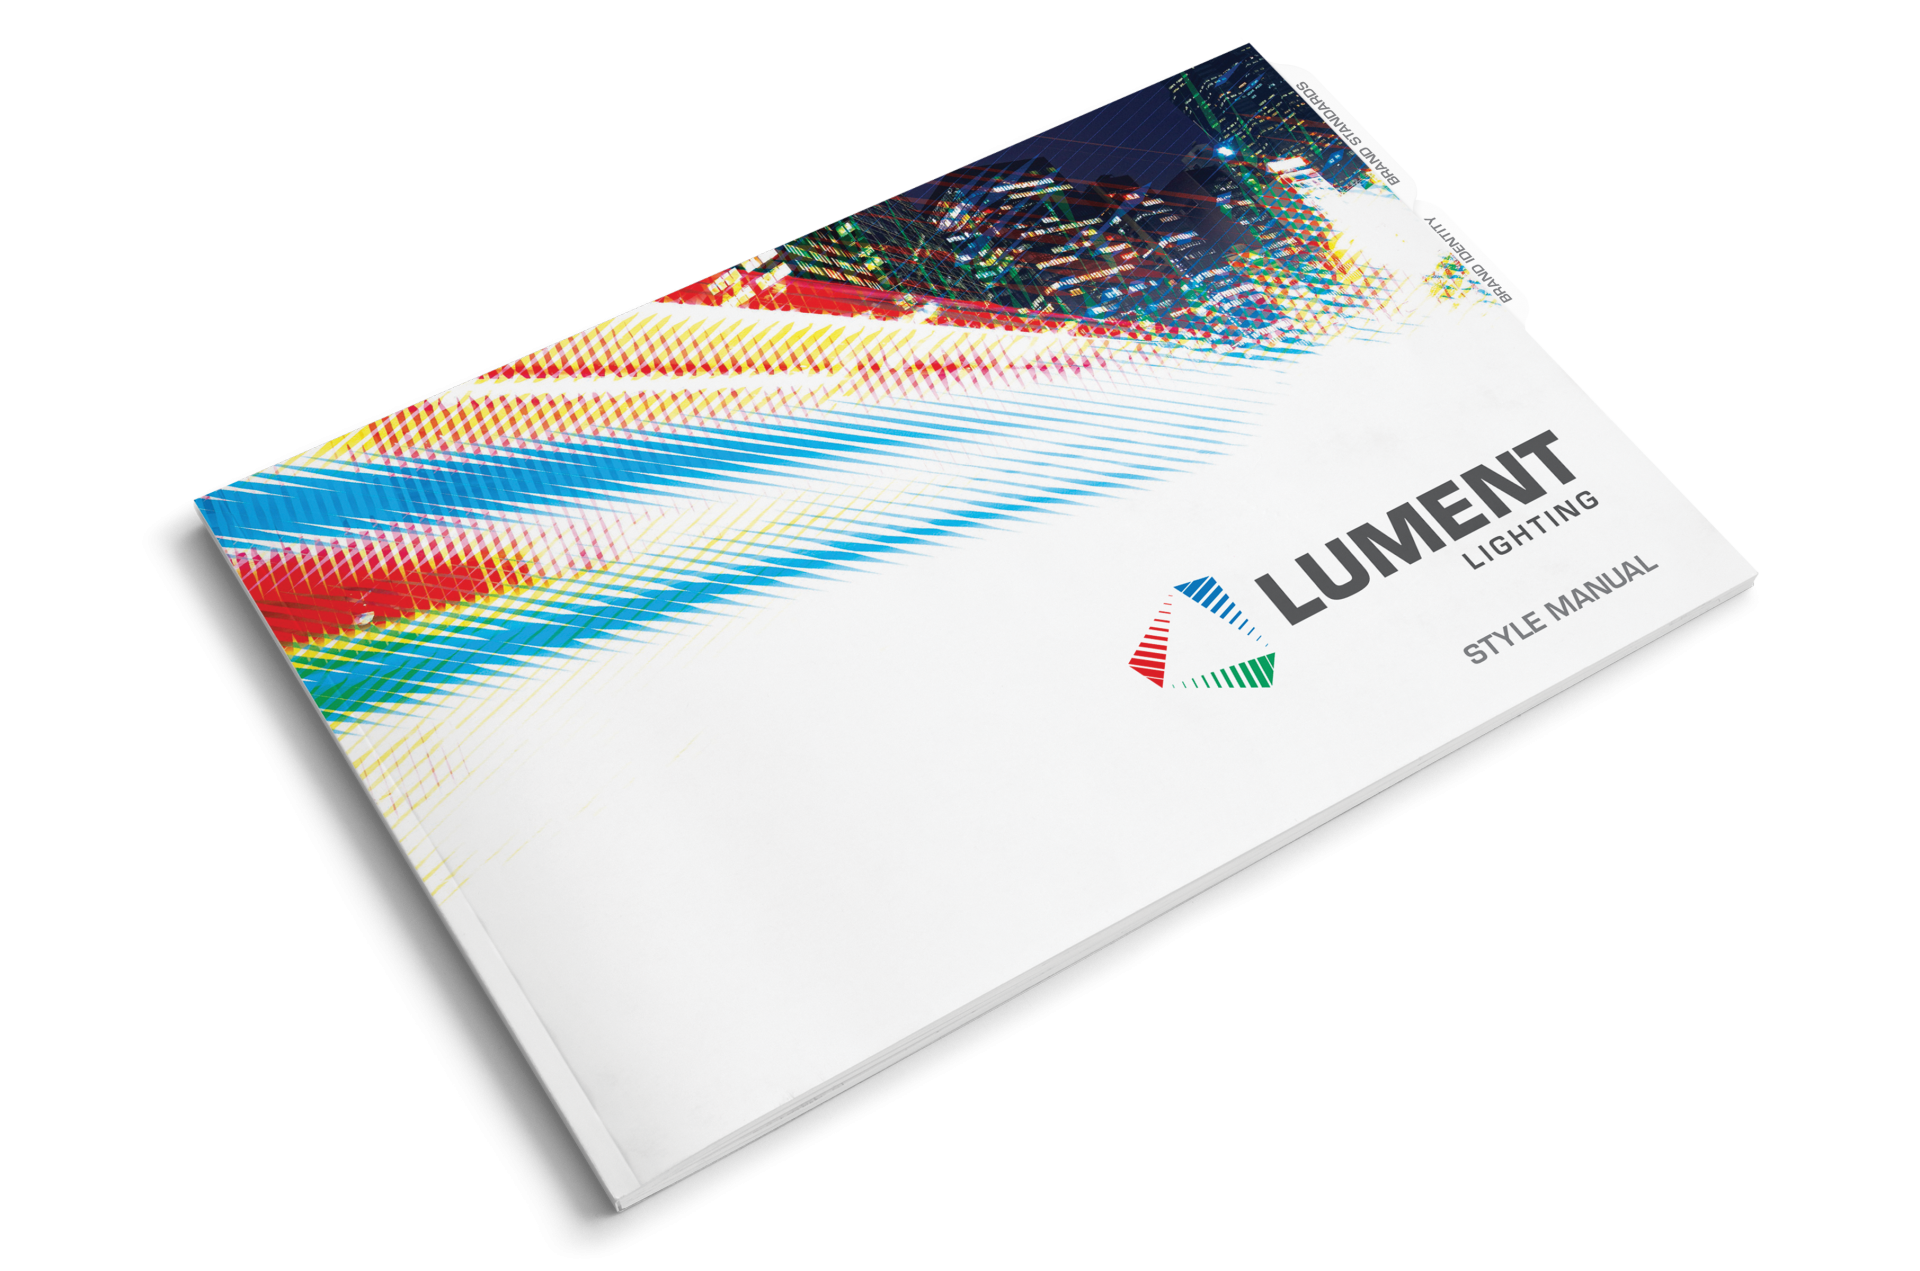 Image of Lument Lighting style manual cover